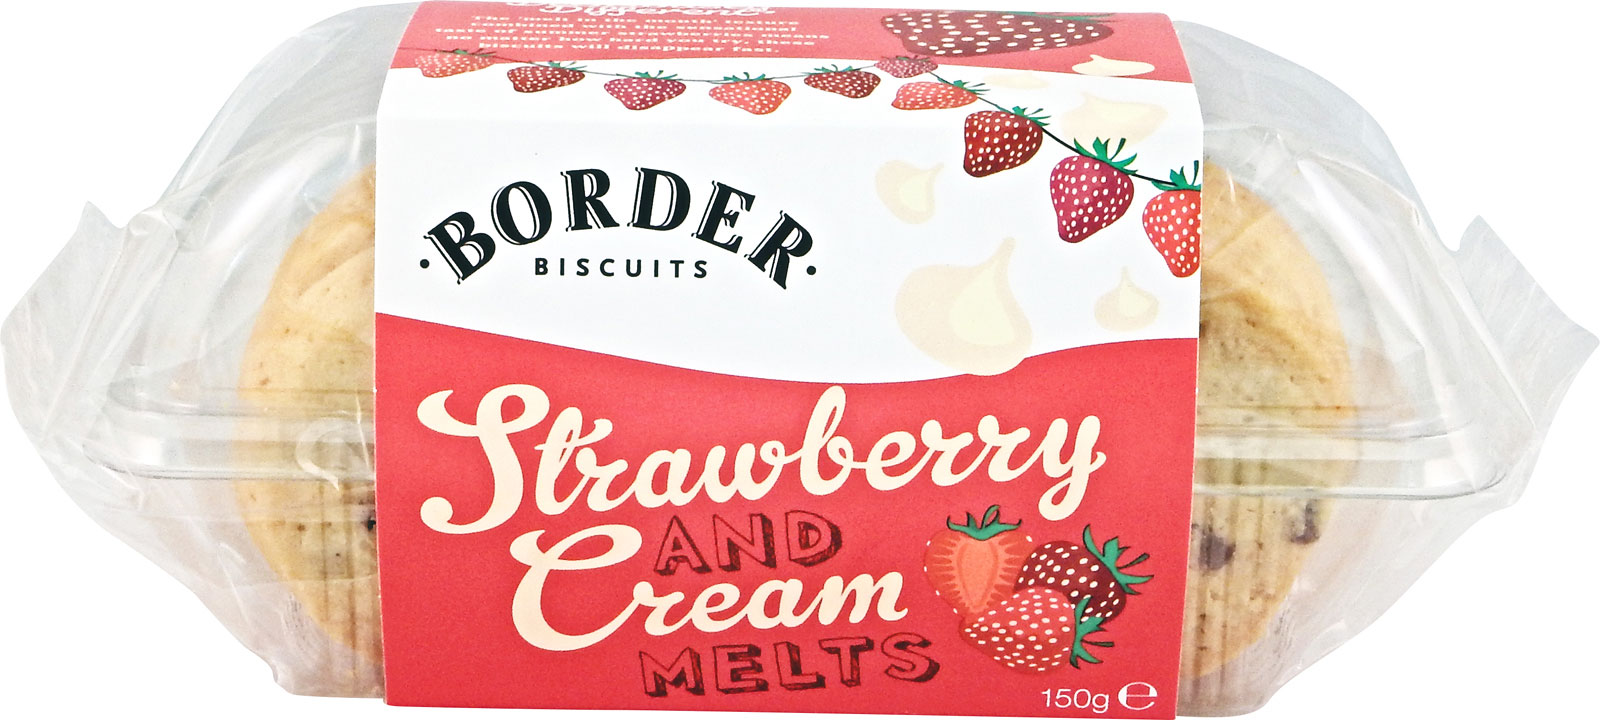 Border Biscuits, White Chocolate & Strawberry Cookies, 150g